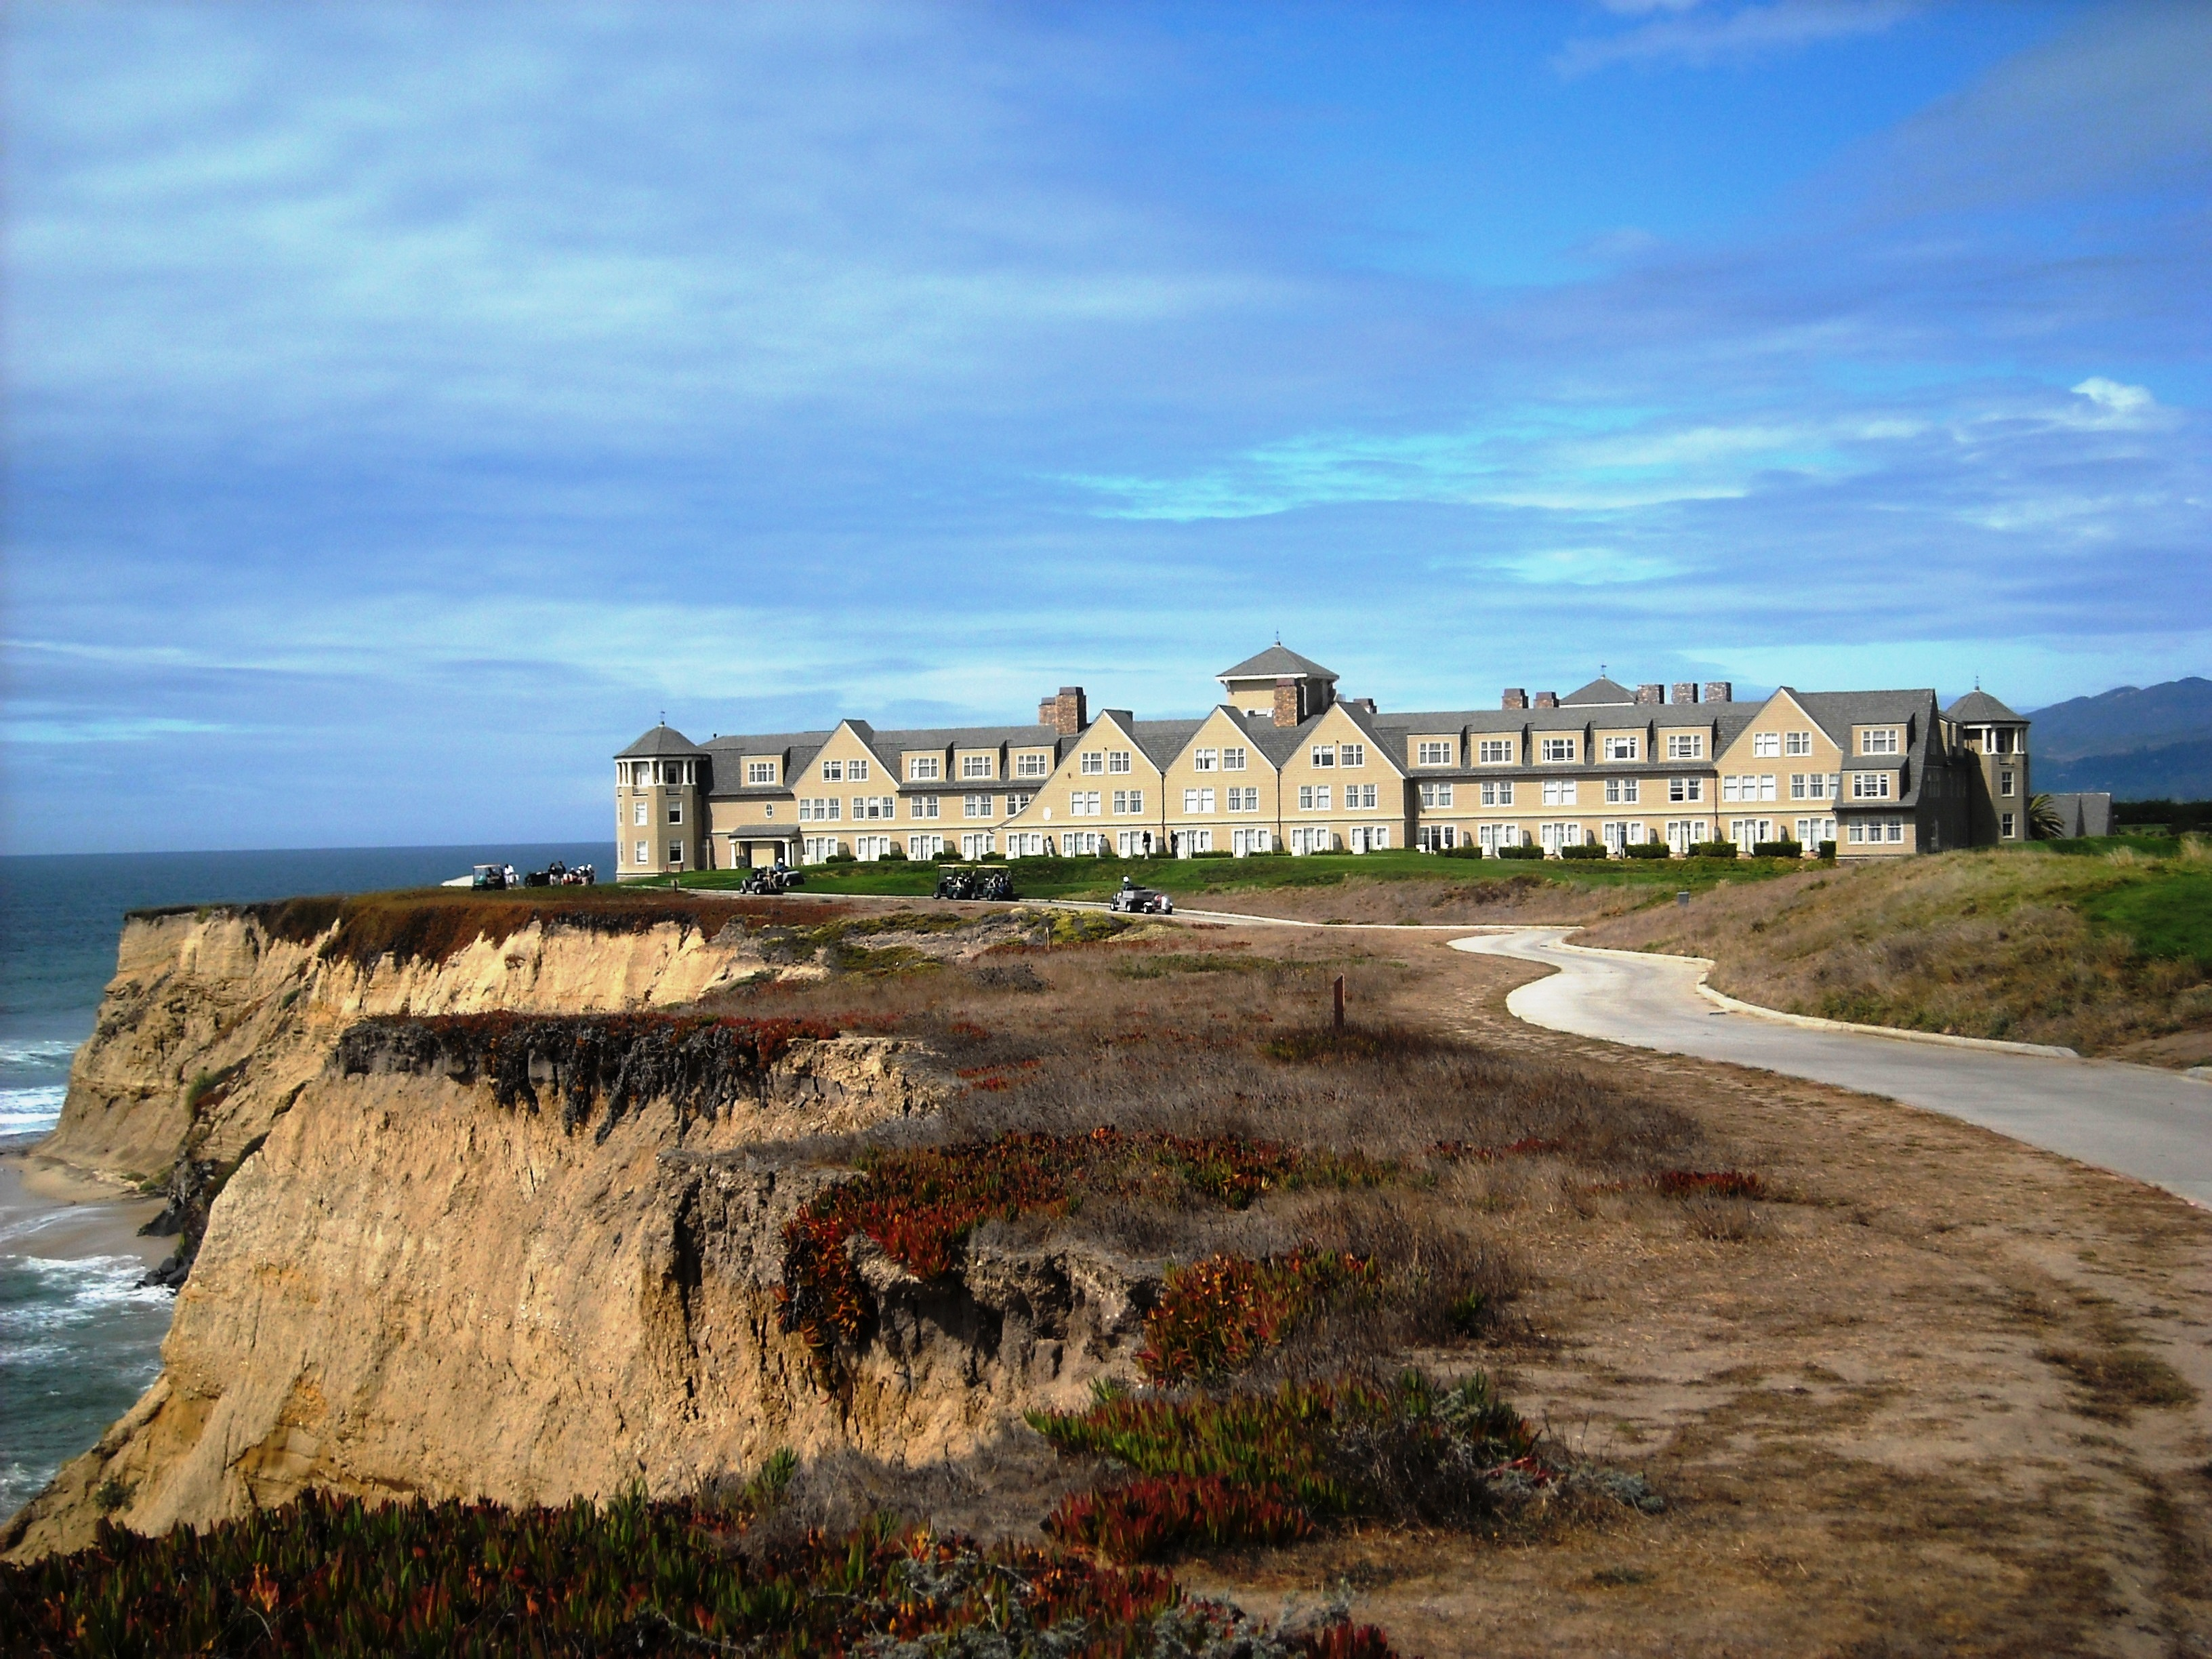 Ritz-Carlton_in_Half_Moon_Bay%2C_California.jpg